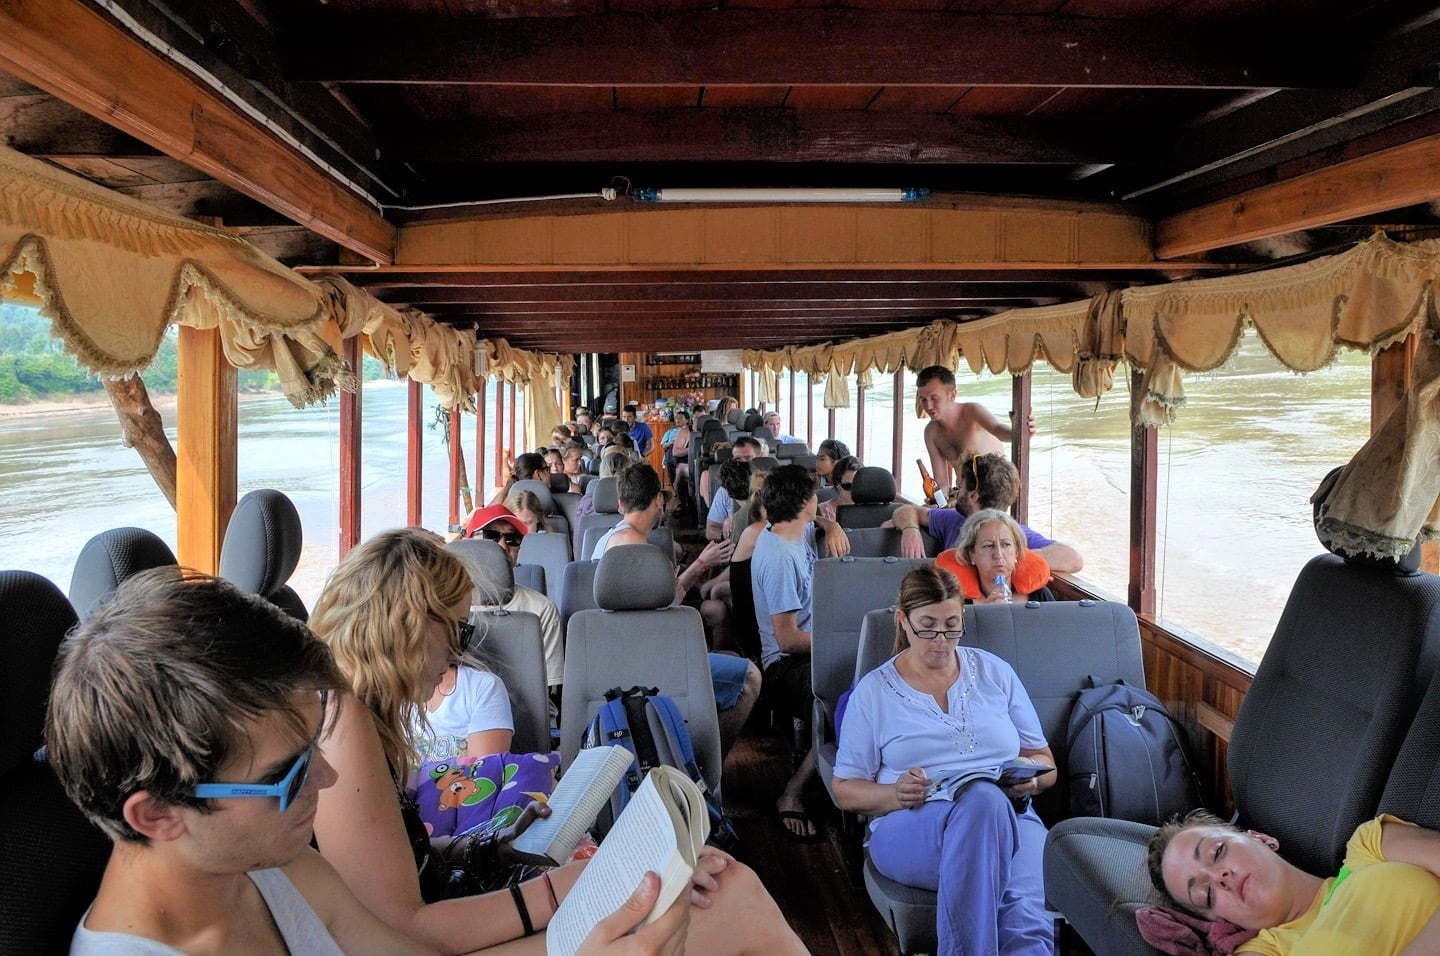 slow boat interior packed with passengers